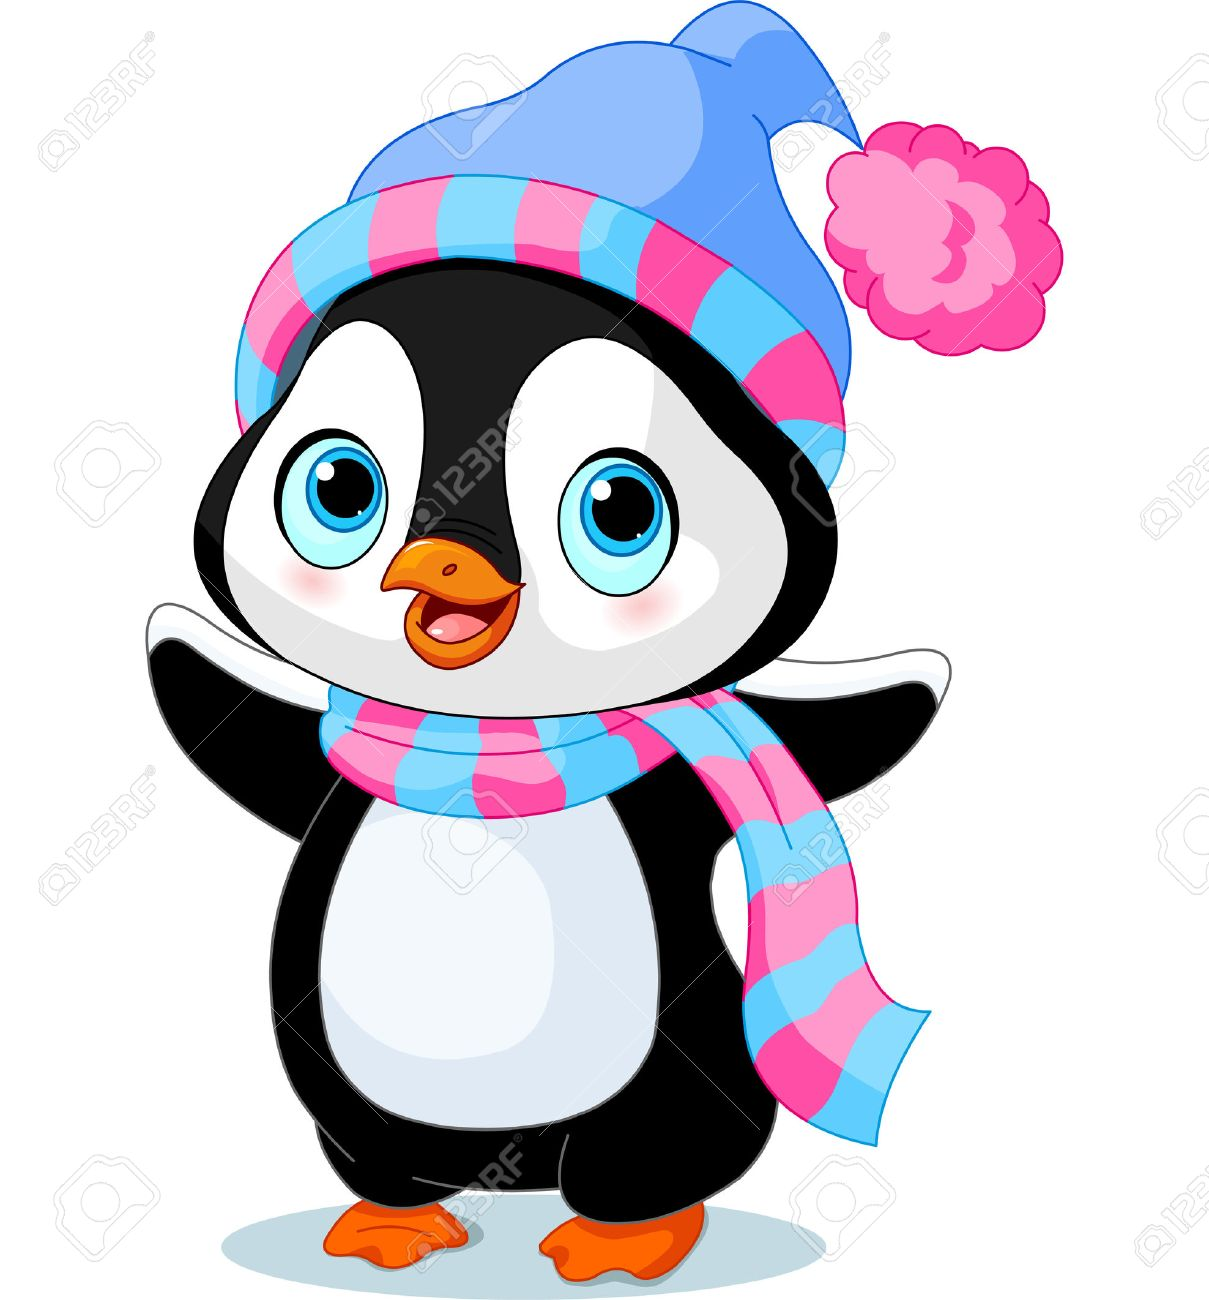 d8160e9e4fc56b Cute Winter Penguin With Hat And Scarf Royalty Free Cliparts ...